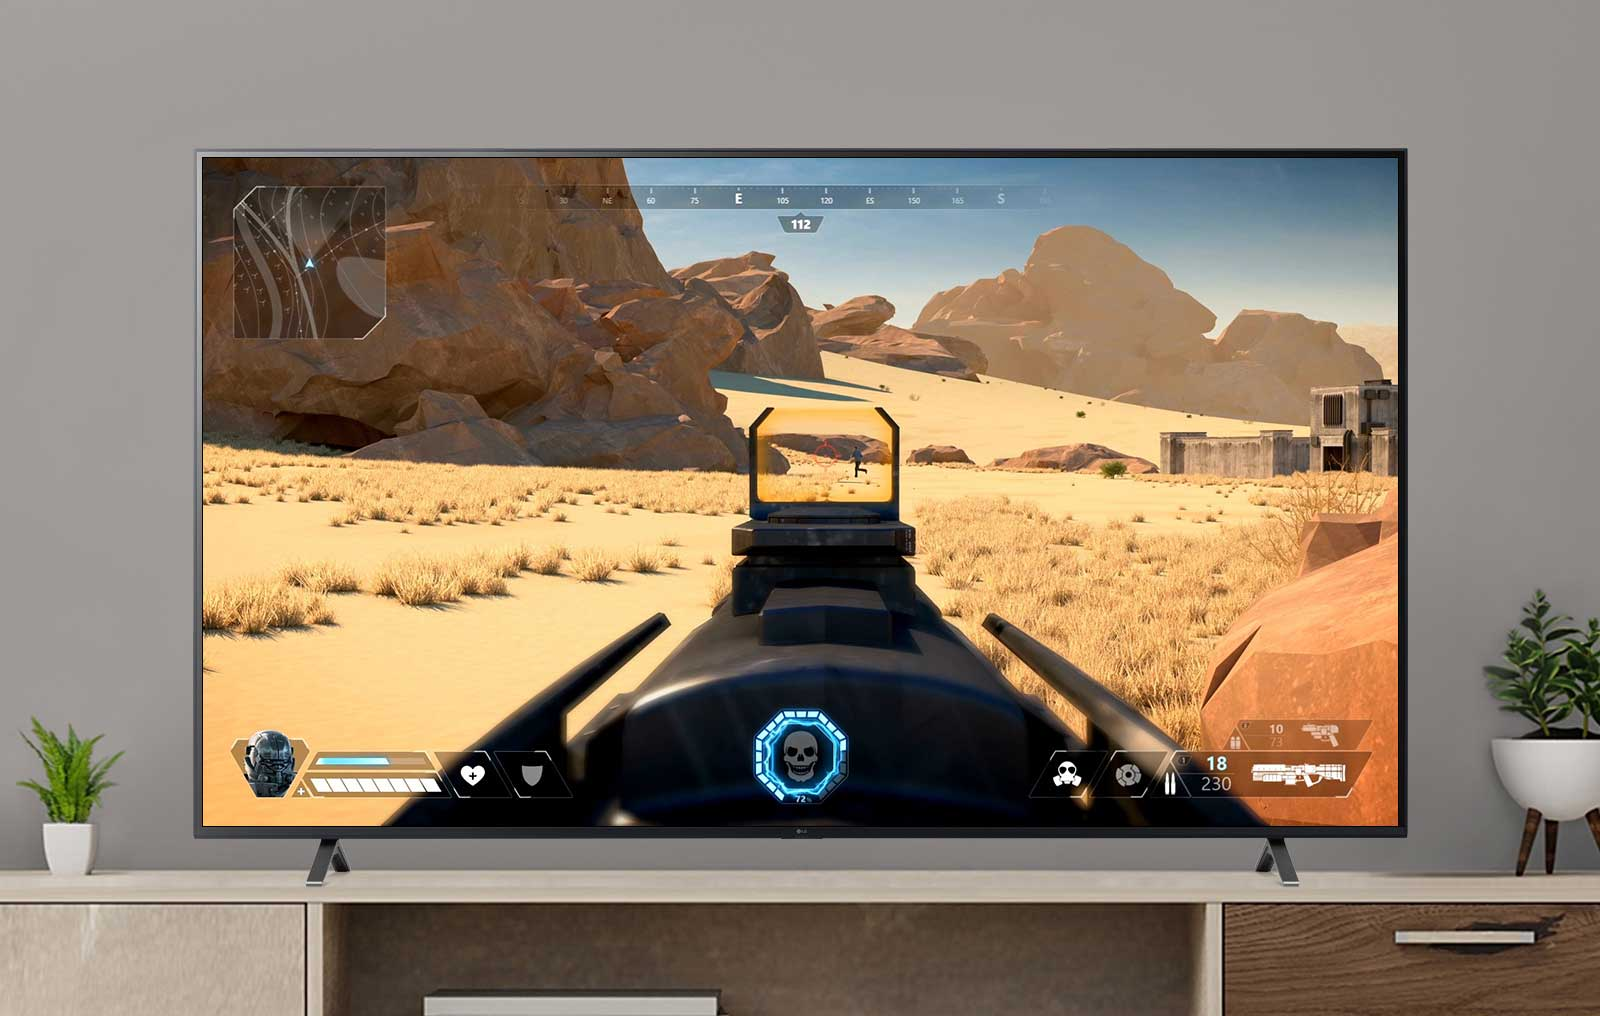 A TV screen playing a video of a FPS game shooting an enemy with a gun. (play the video)